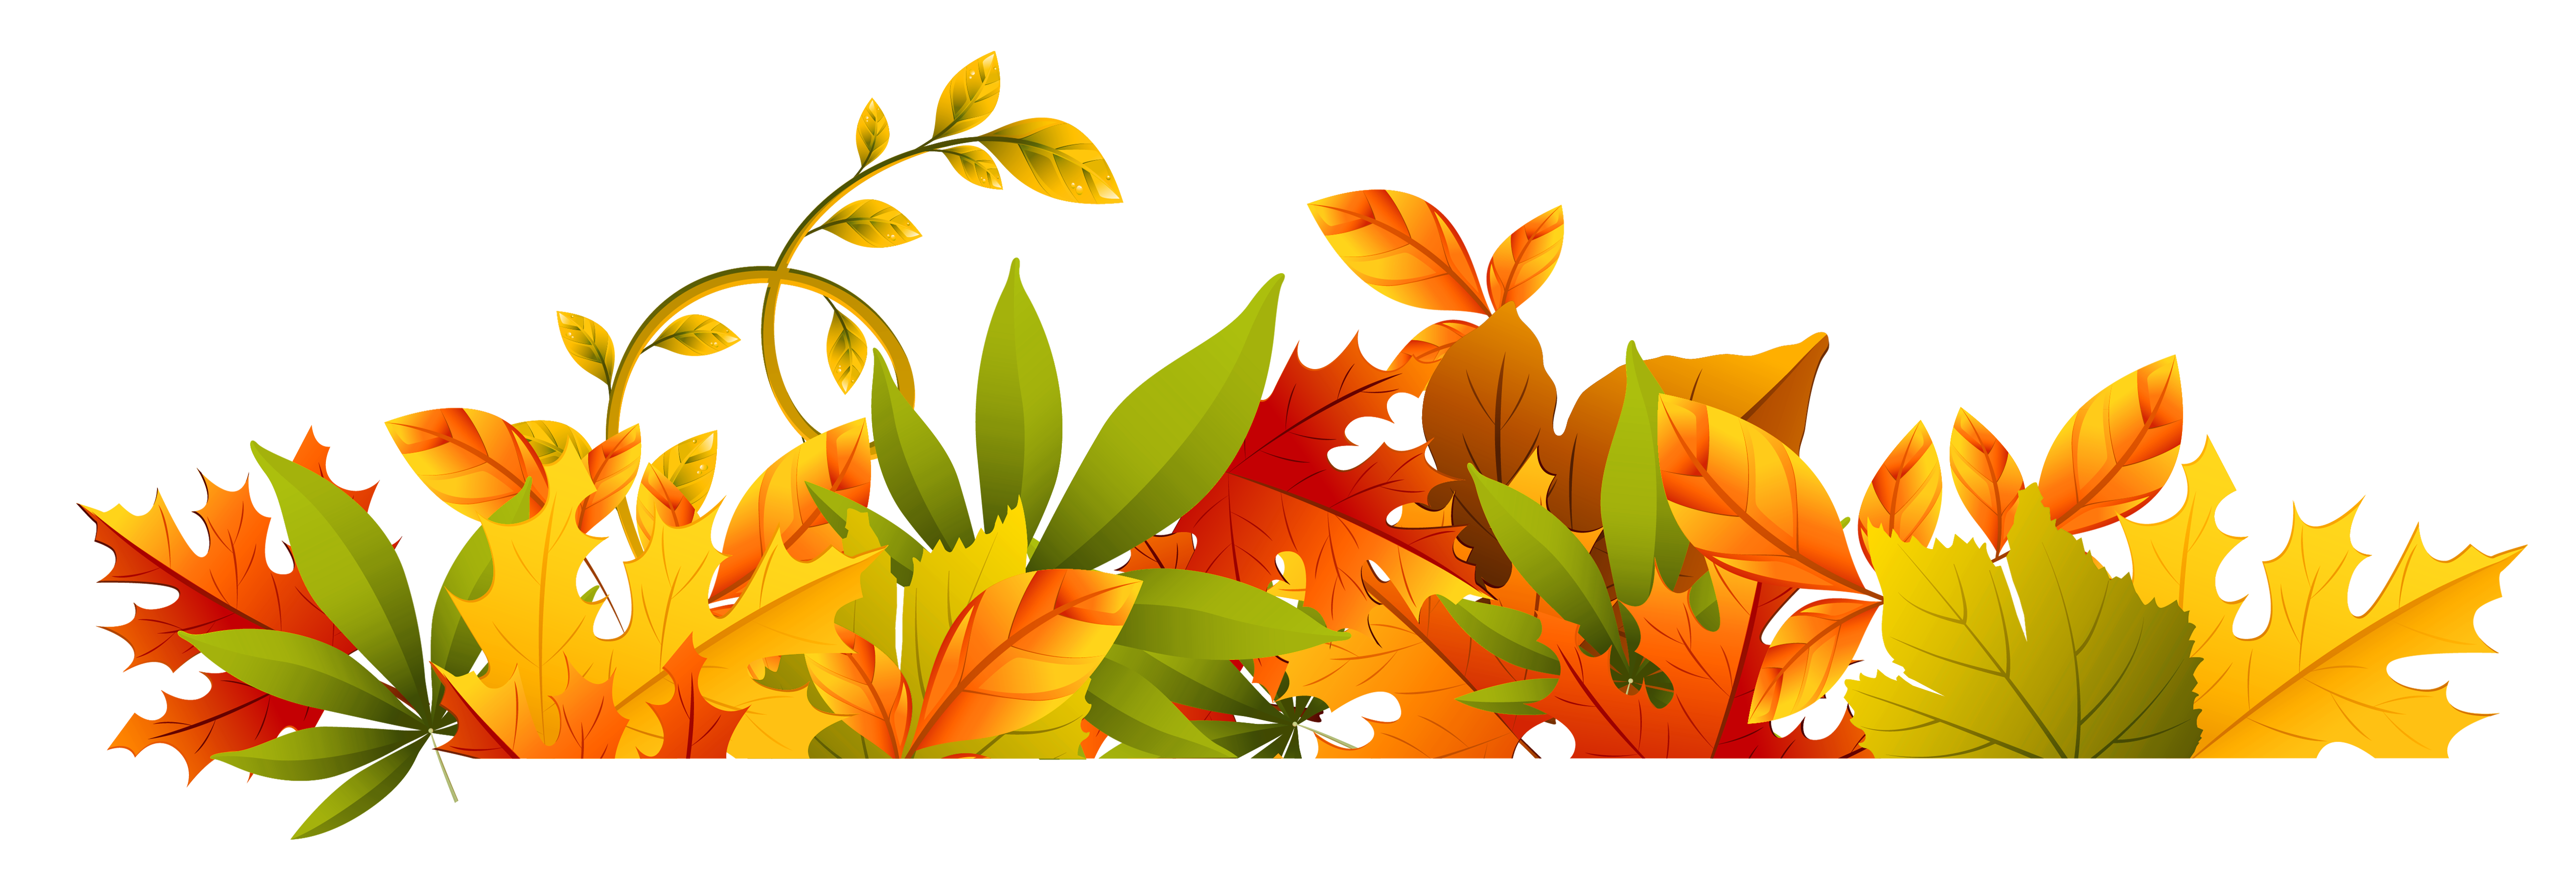 Fall clipart png. Transparent autumn border gallery